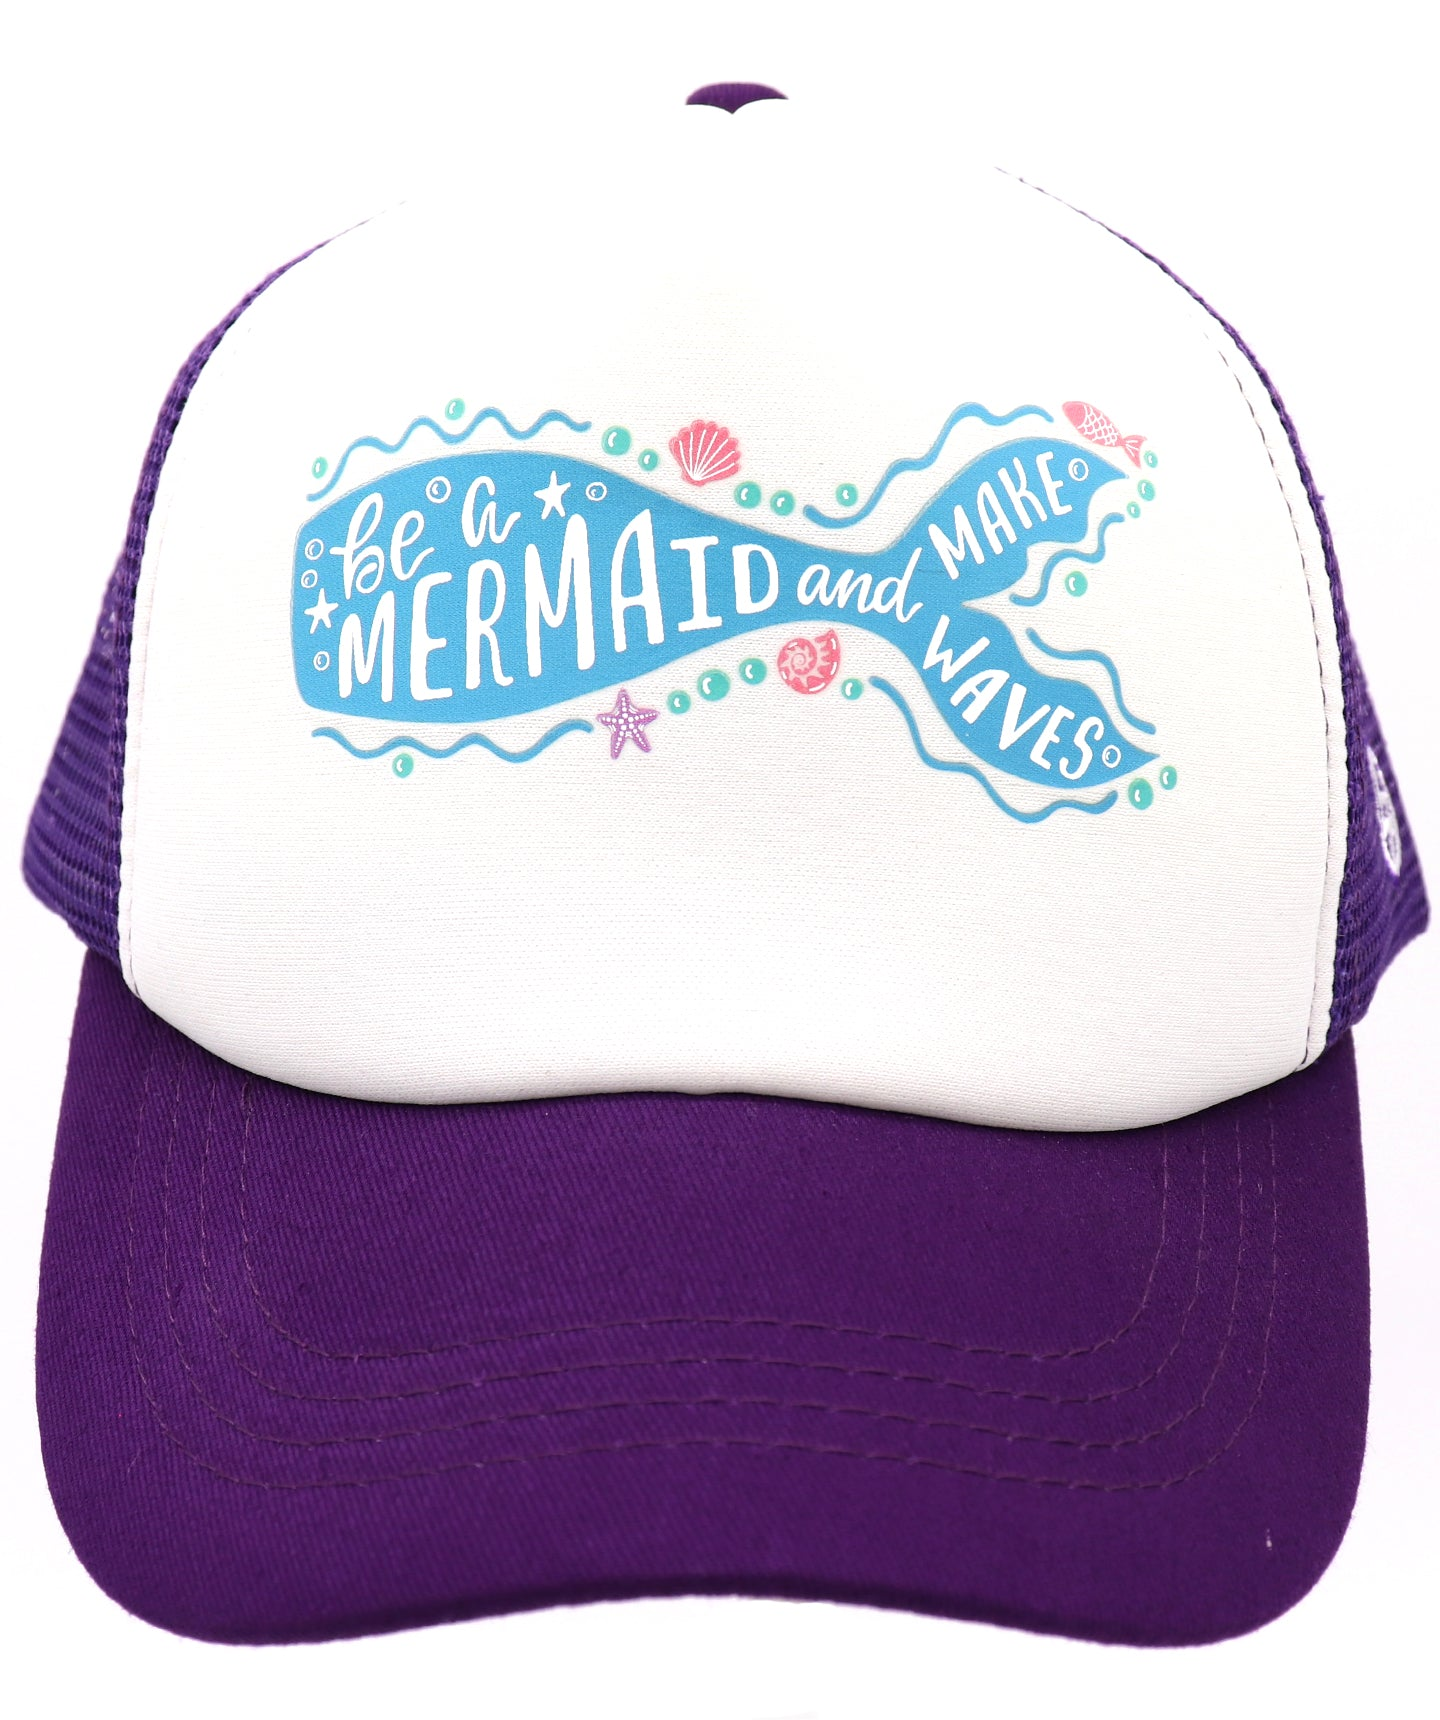 Be a mermaid and makes waves purple mesh baseball hat for girl's ages 3-7. Hat for everyday, summer, beach, ocean hat for youth, boys, girls, and even toddler with snapback. Kids baseball hat Sold by SDtrading Co.